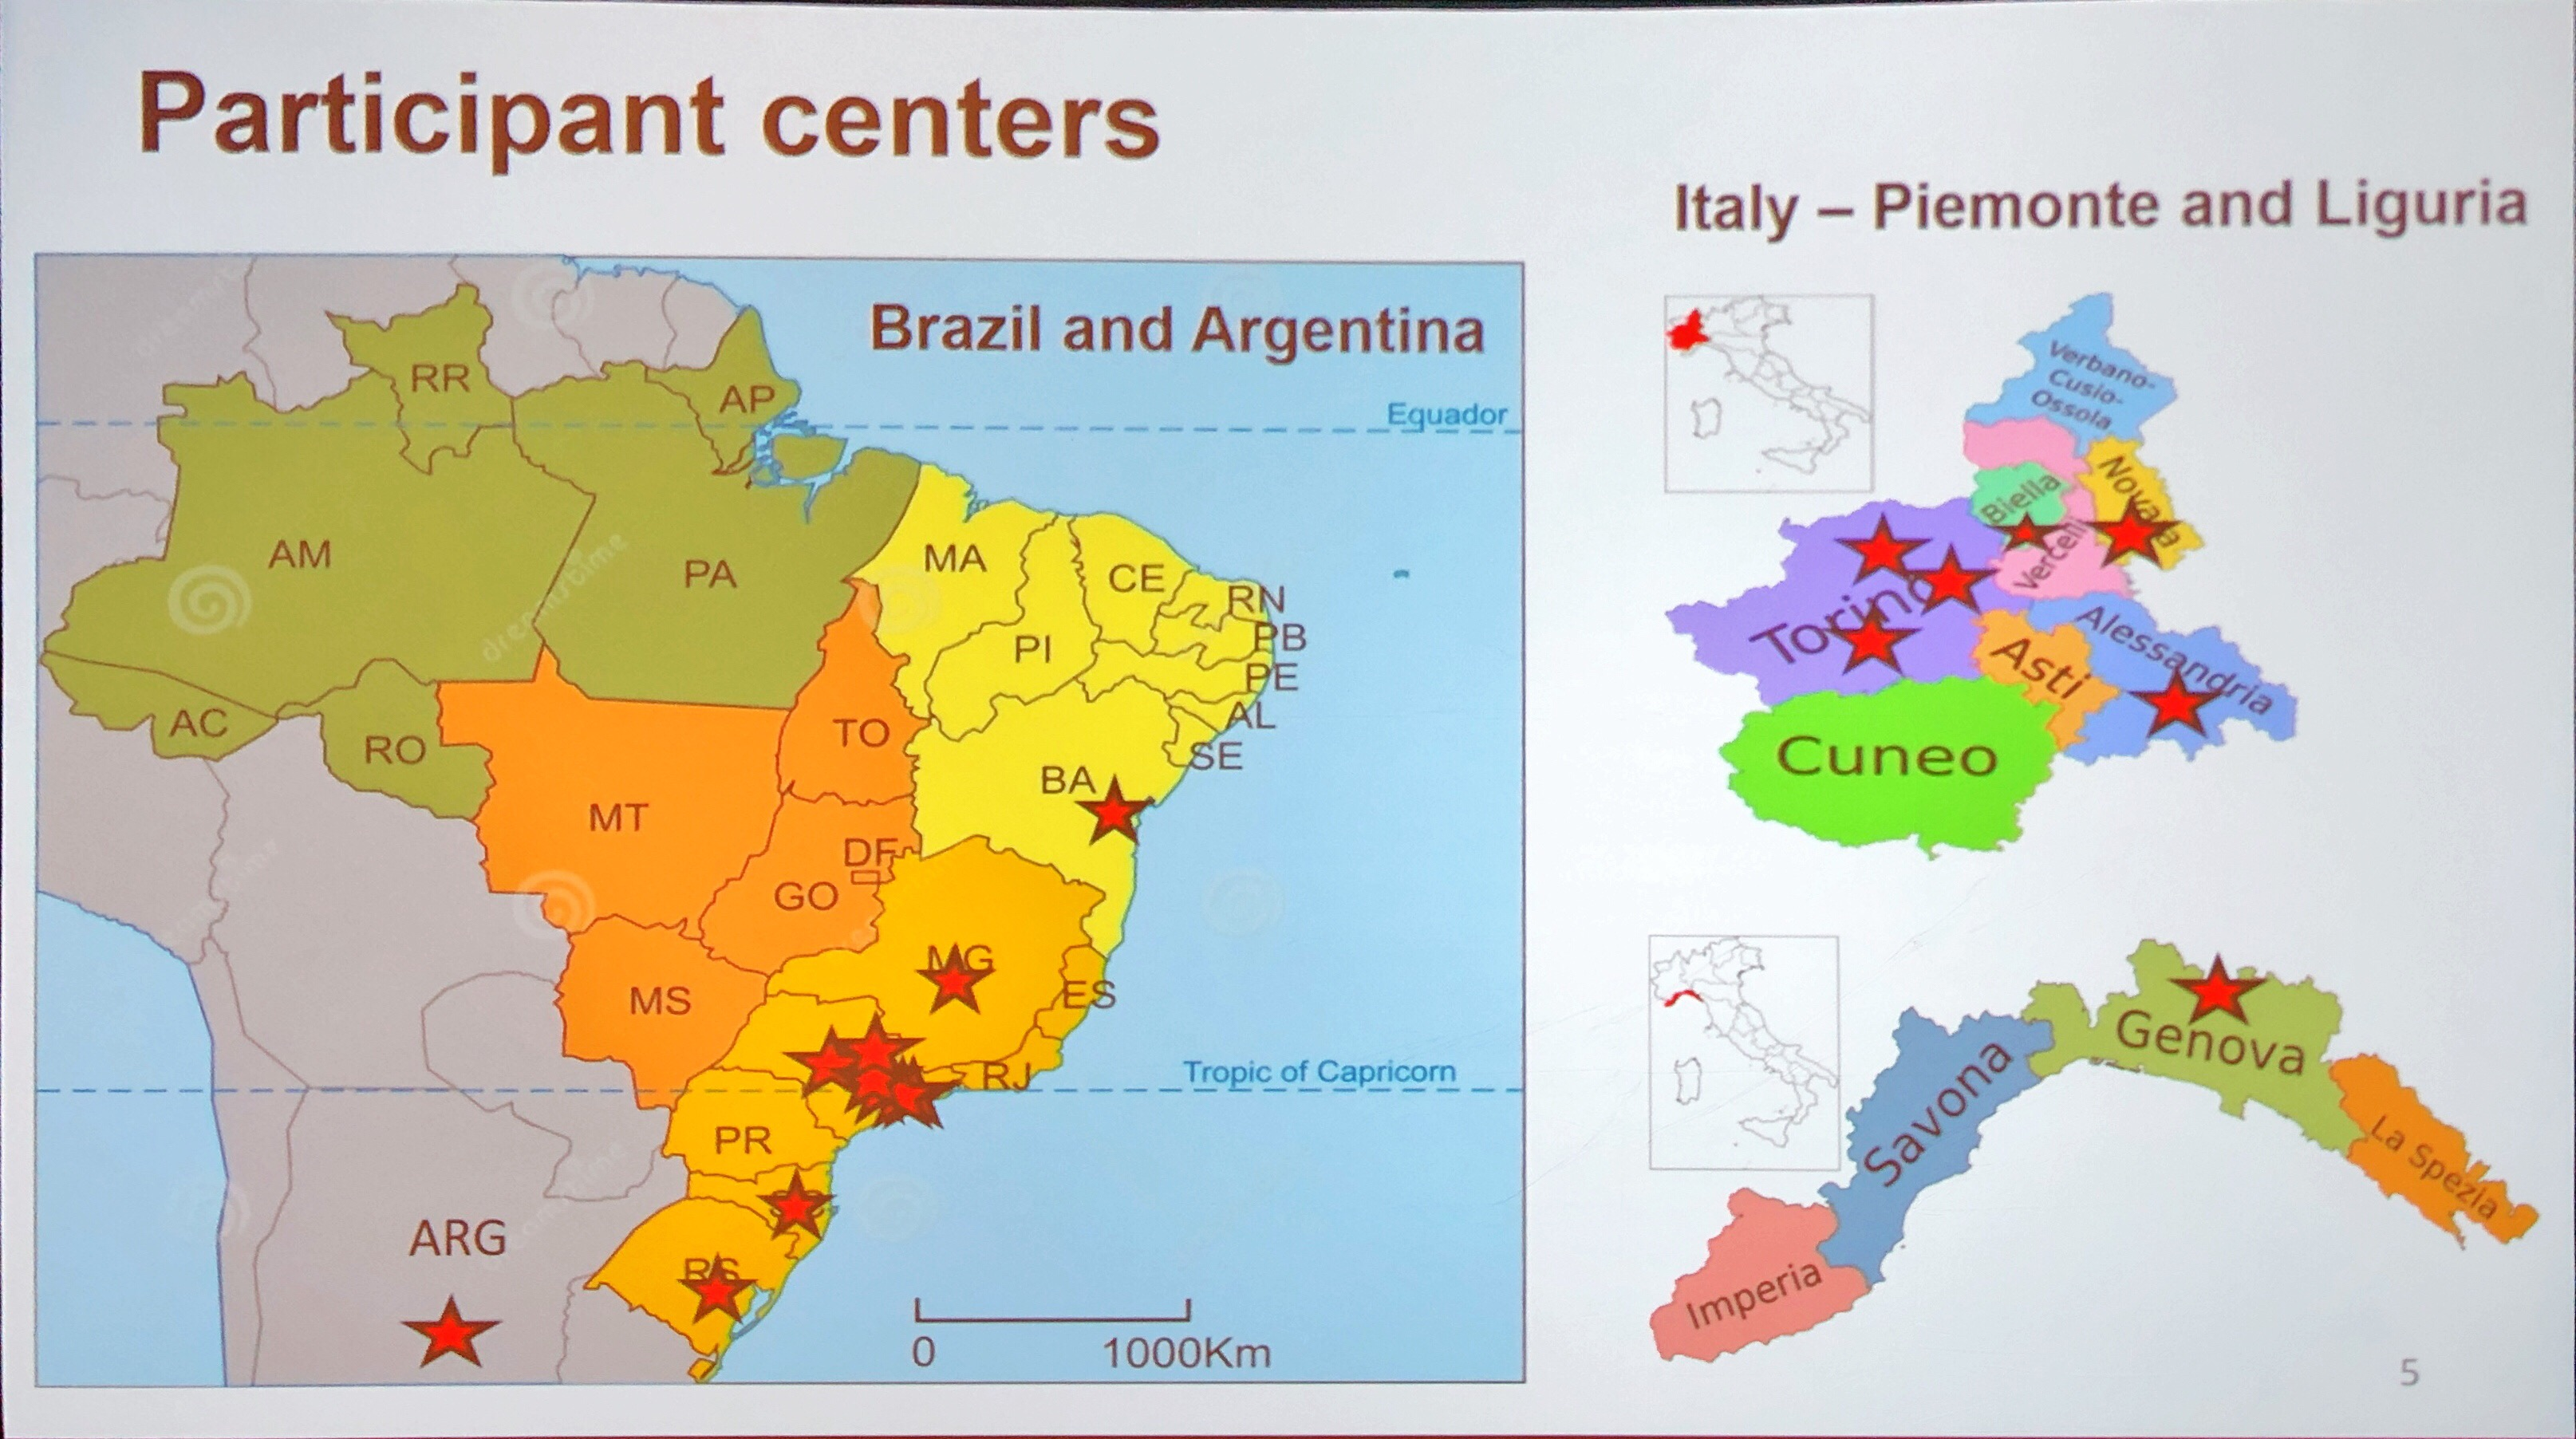 Participating centers